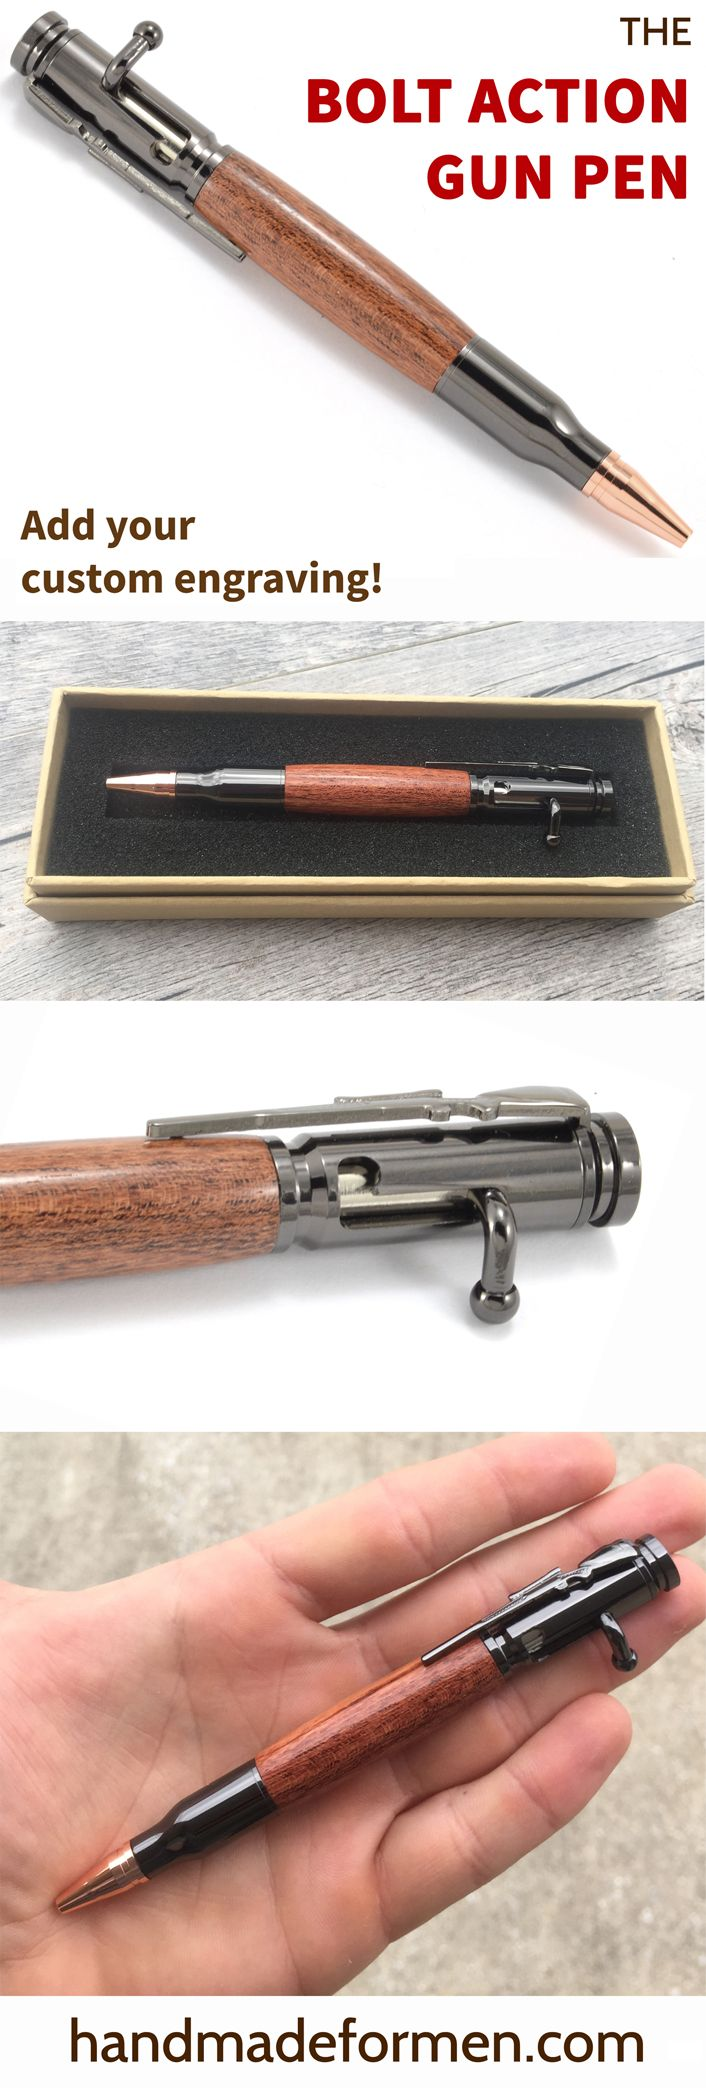 Great Gun Gifts for Him! This wood bolt action pen is the perfect gift for any gun enthusiast! $39 or add your custom engraving for just $10! See handmadeformen.com to order.